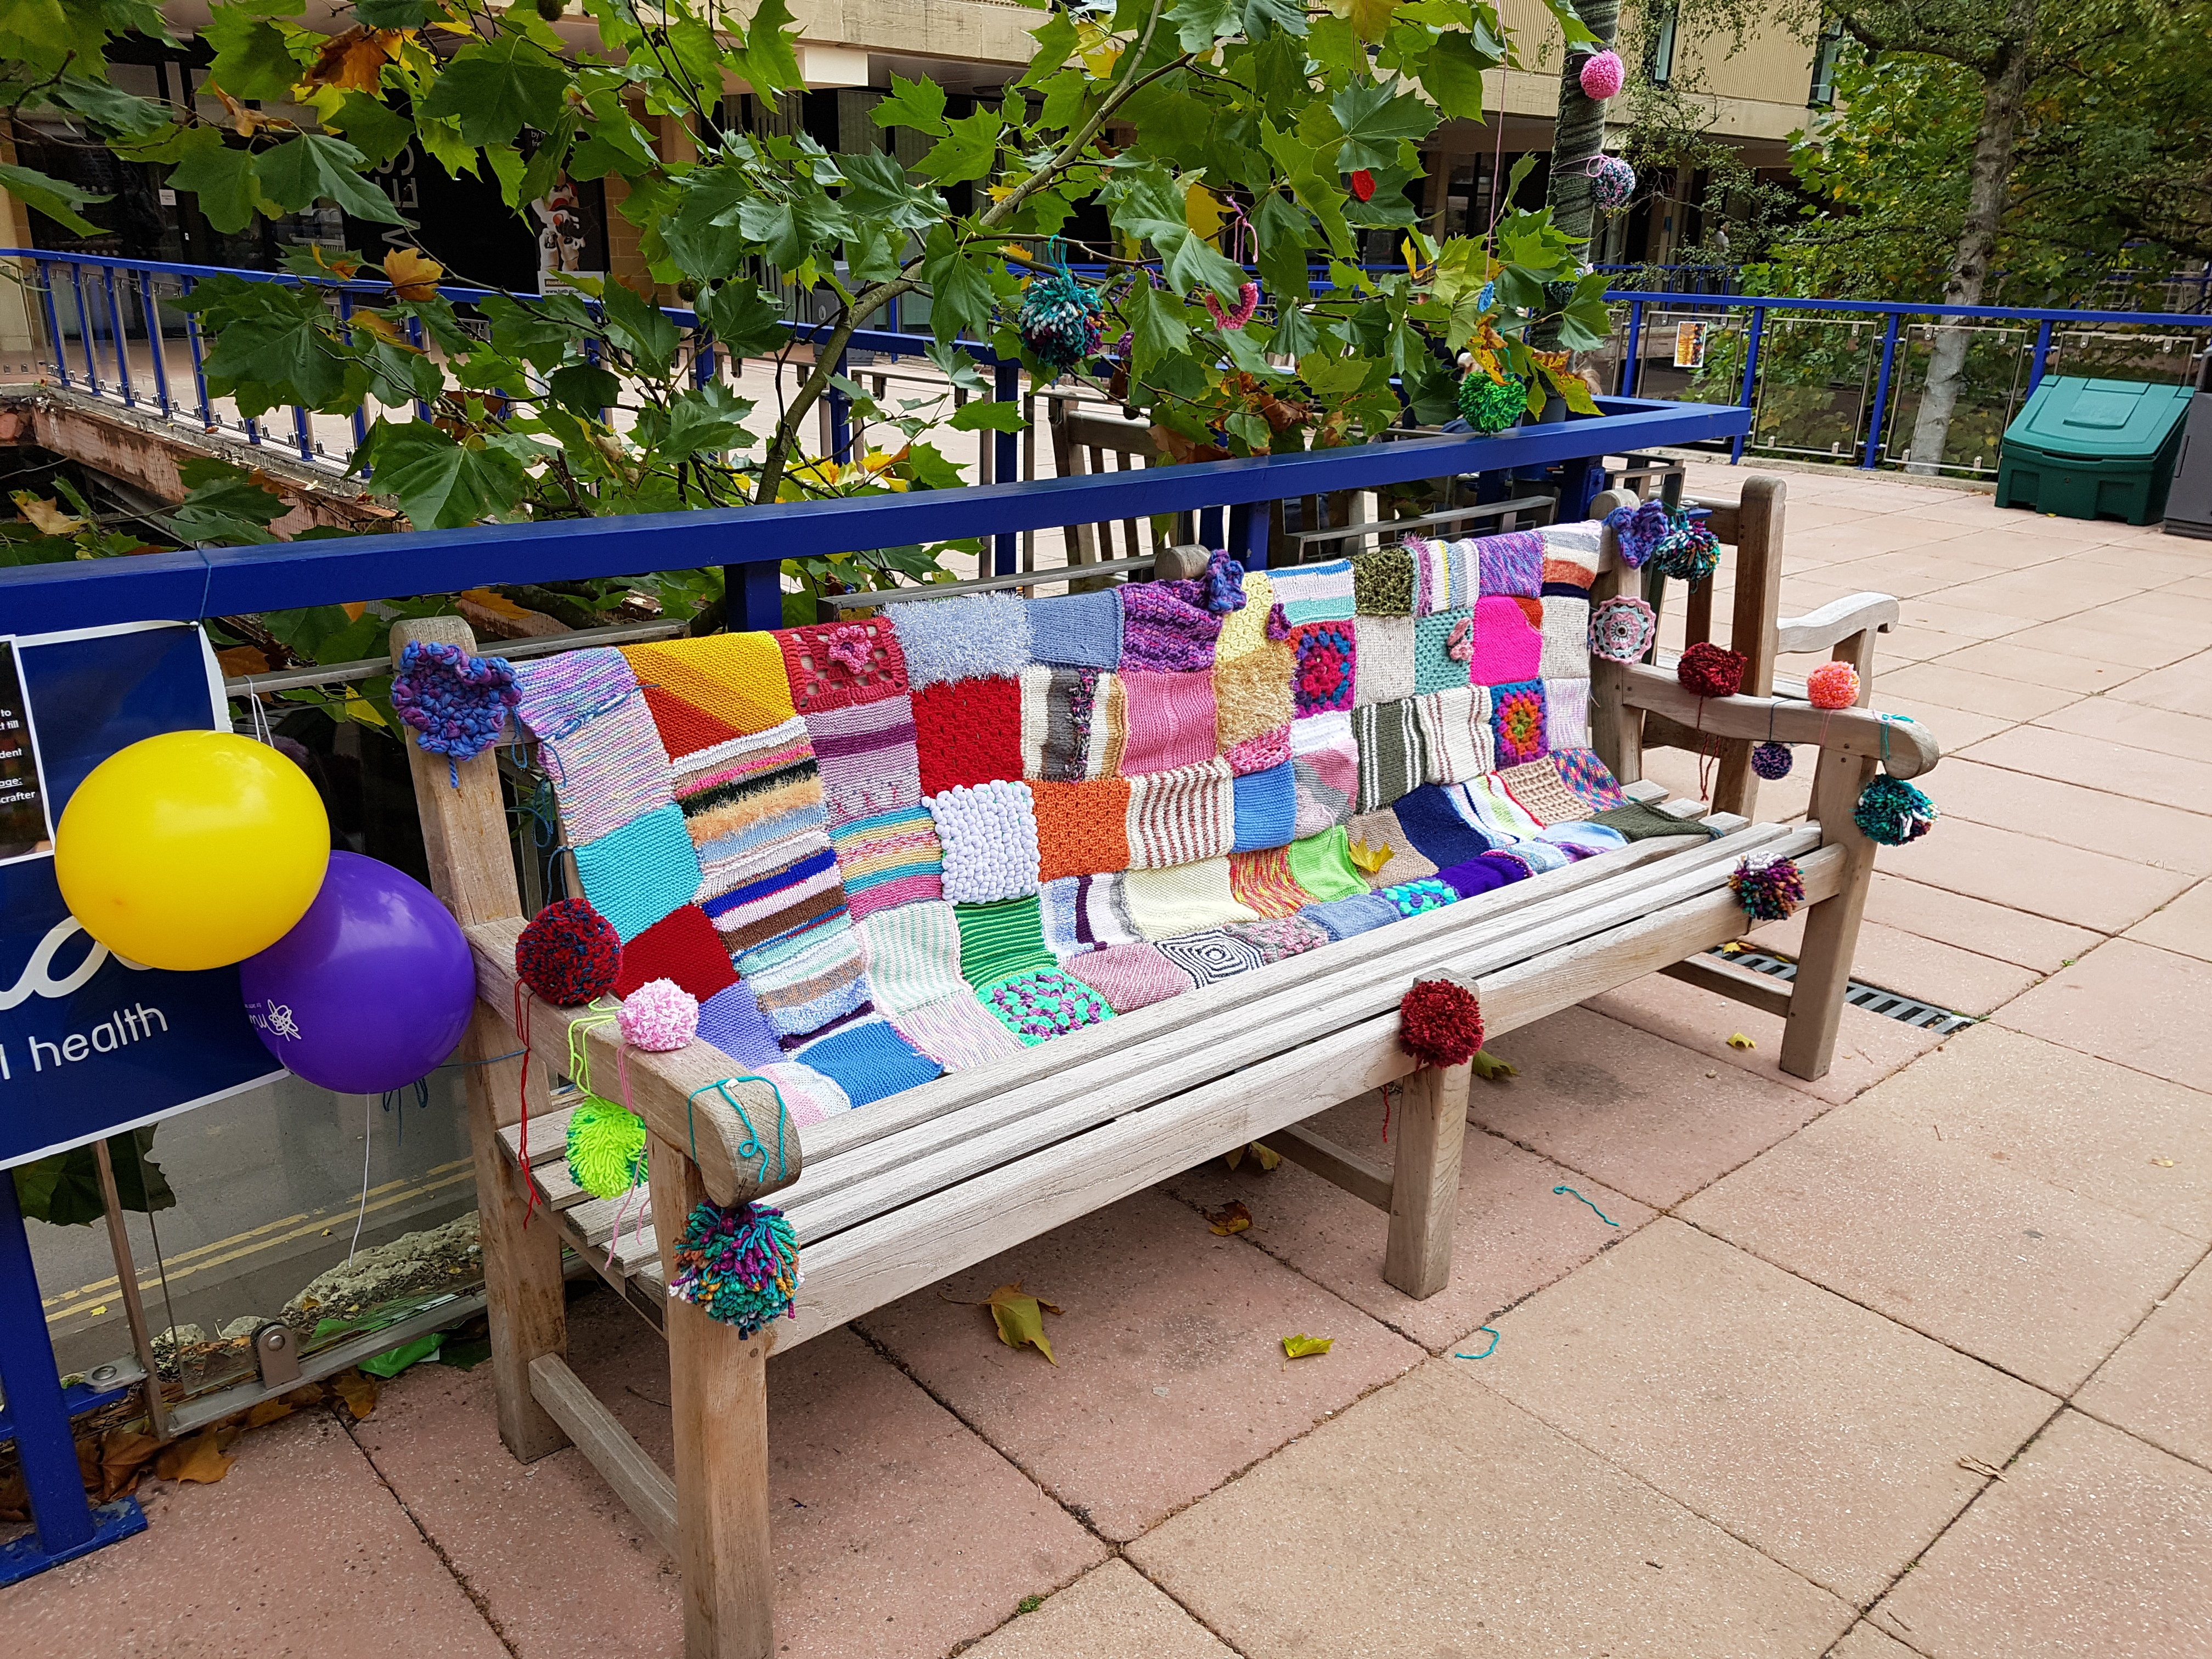 A bench covered in woollen squares